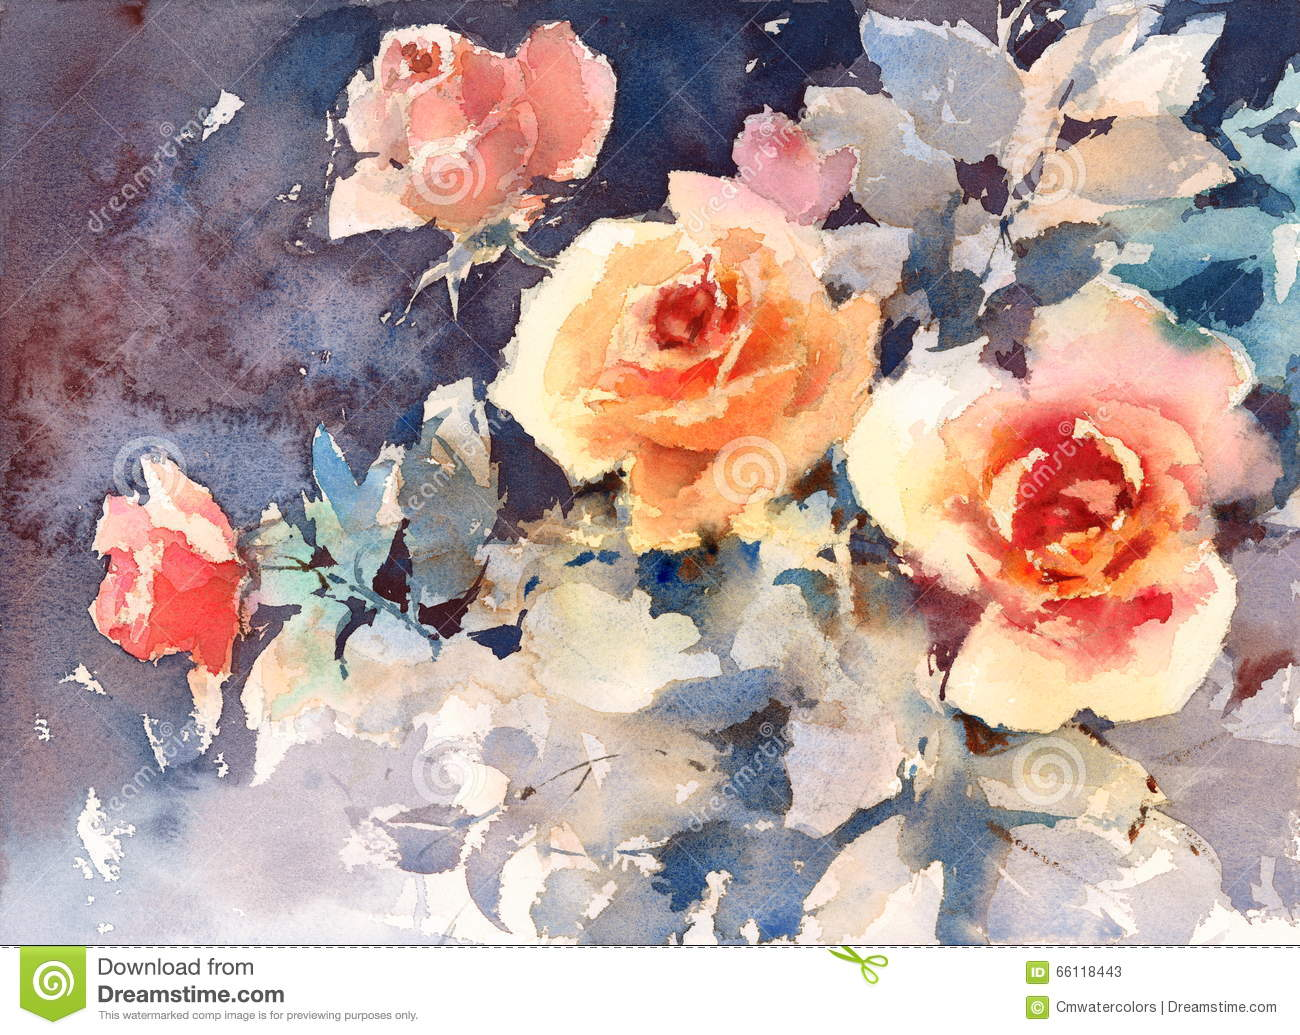 Roses Watercolor Flowers On Dark Background Illustration Hand